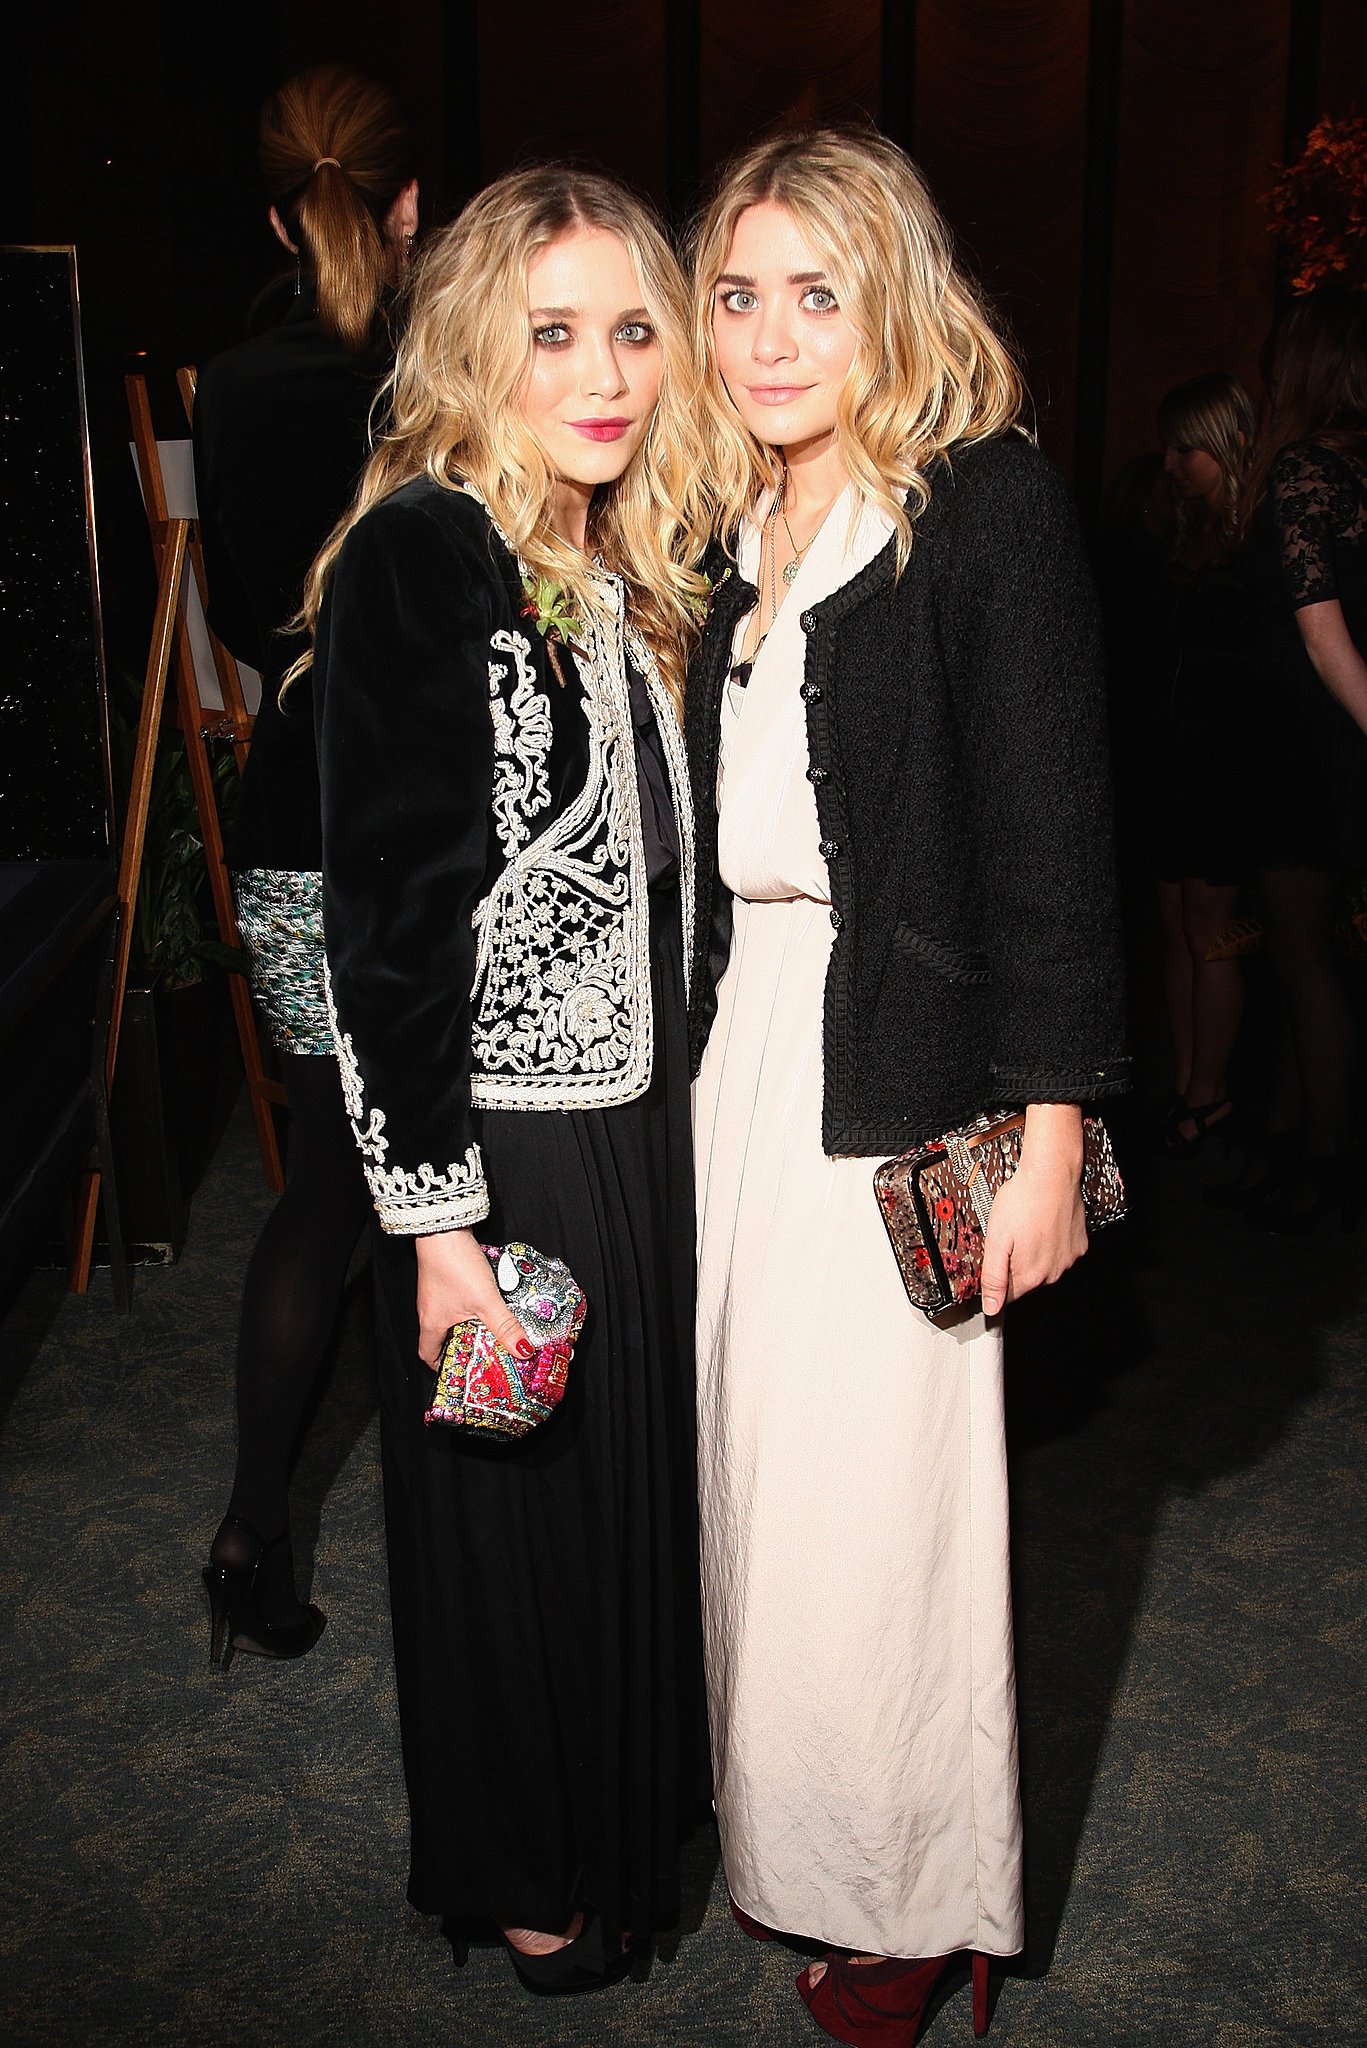 Twinning combo: At the 2009 CFDA new members reception, the darling duo polished their gorgeous gowns with ornate jackets.  Mary-Kate topped her black gown with a velour brocade jacket and colorful miniclutch. Ashley contrasted her cream-colored crepe gown with a black tweed jacket and burgundy platforms.